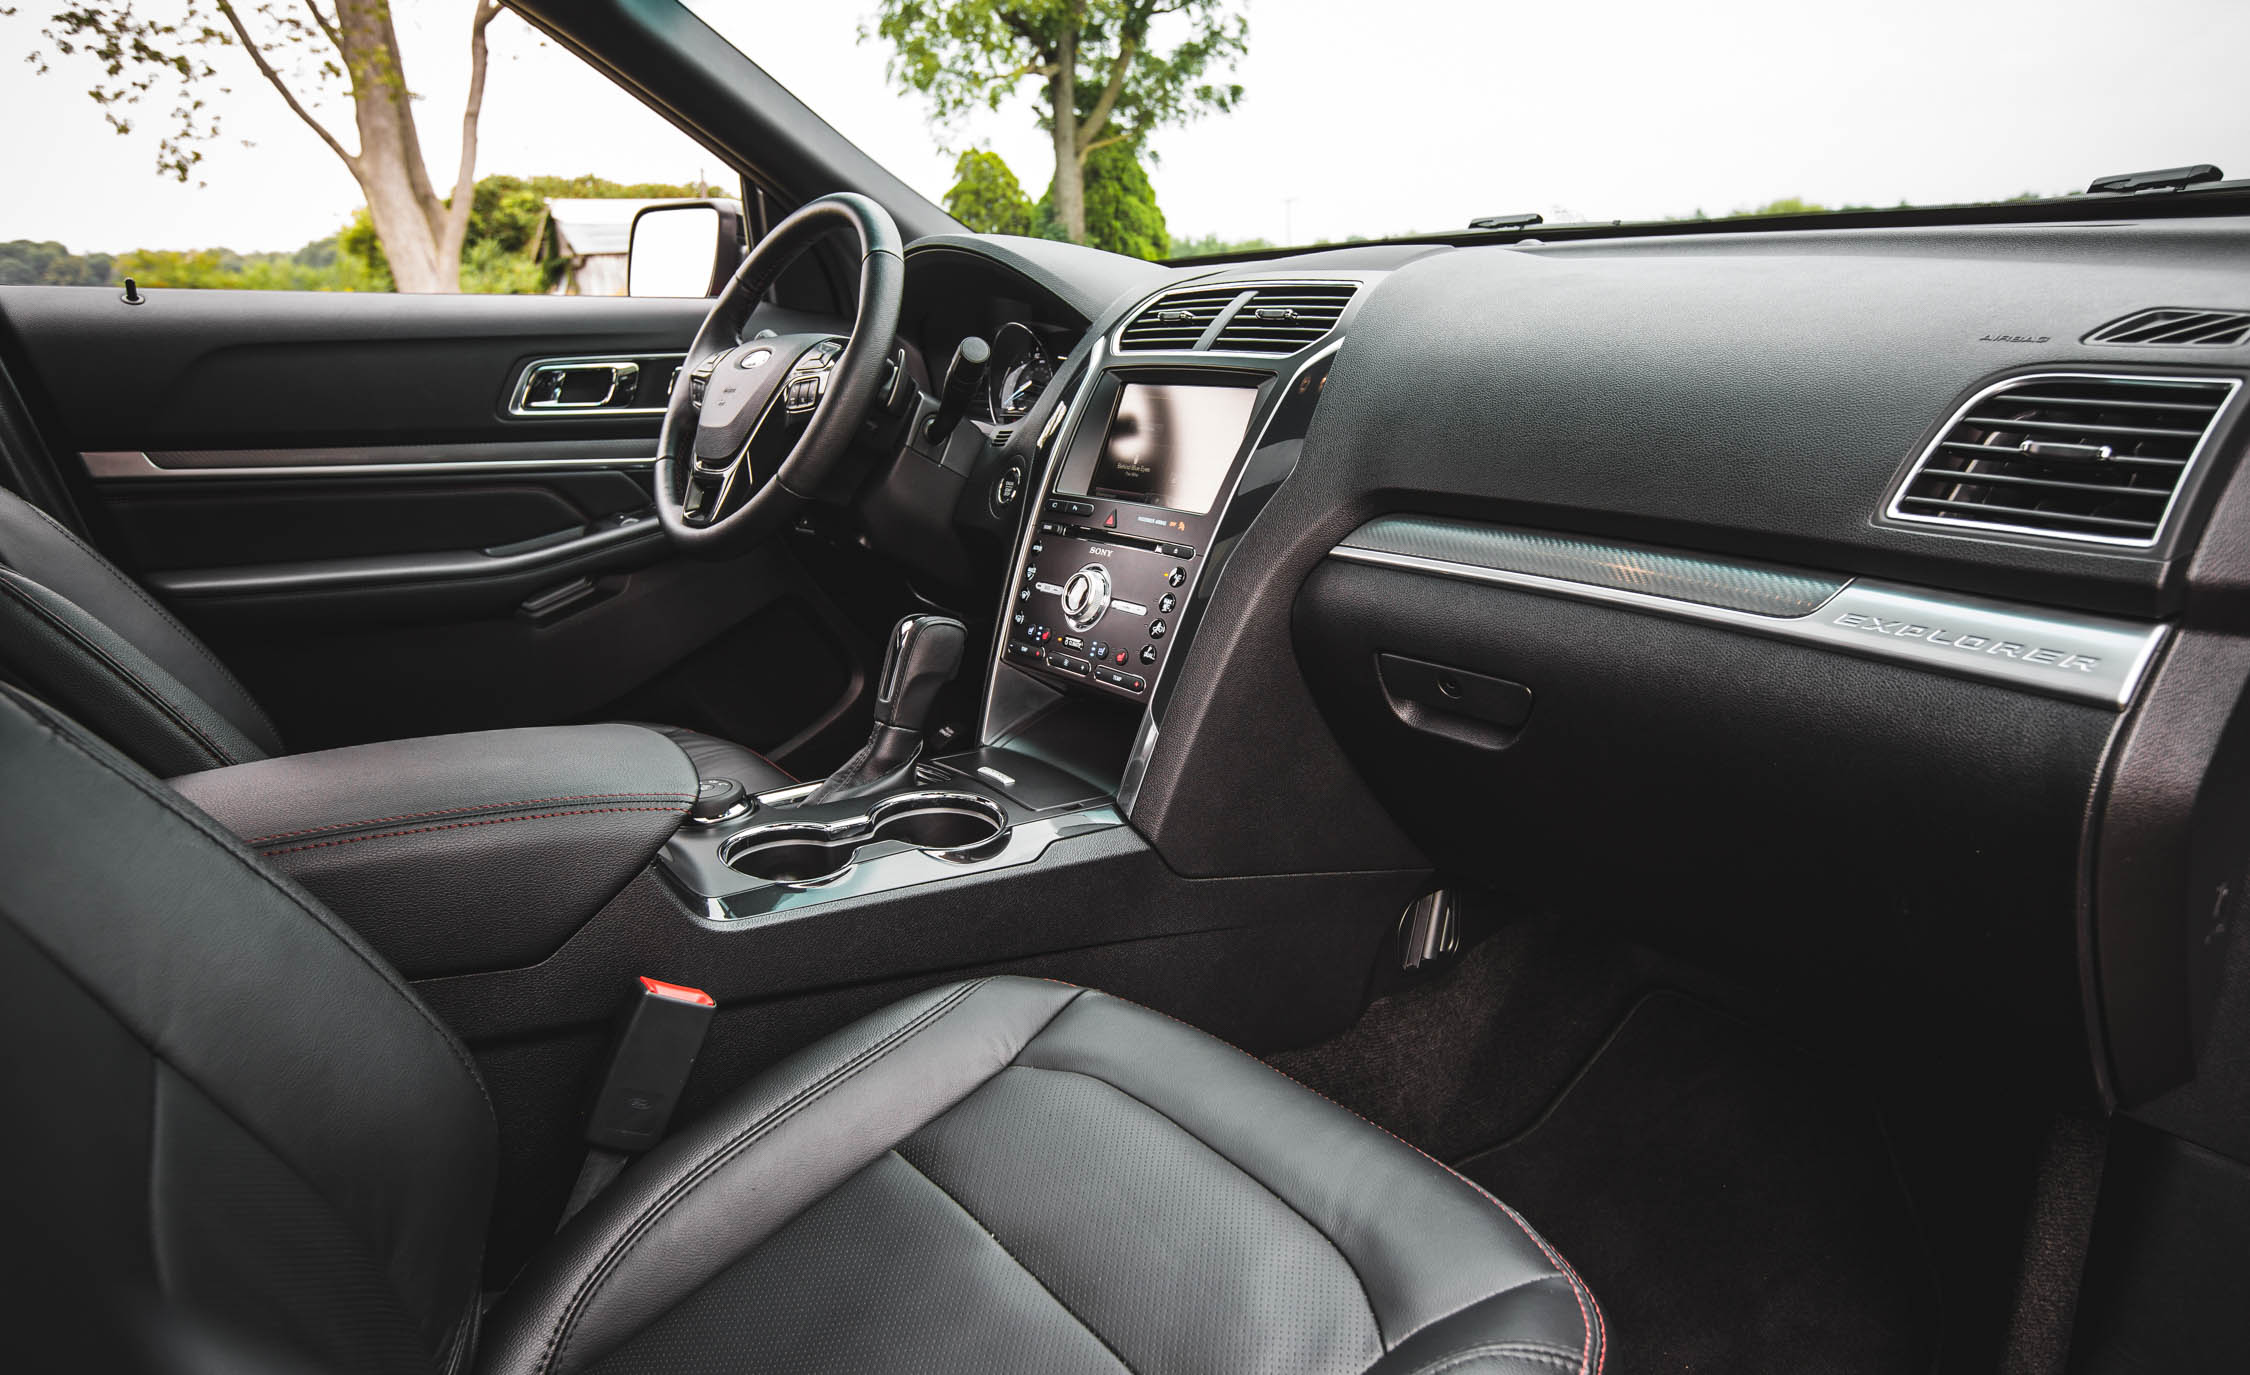 Driving experience 2016 ford explorer sport 9030 cars - 2013 ford explorer interior parts ...